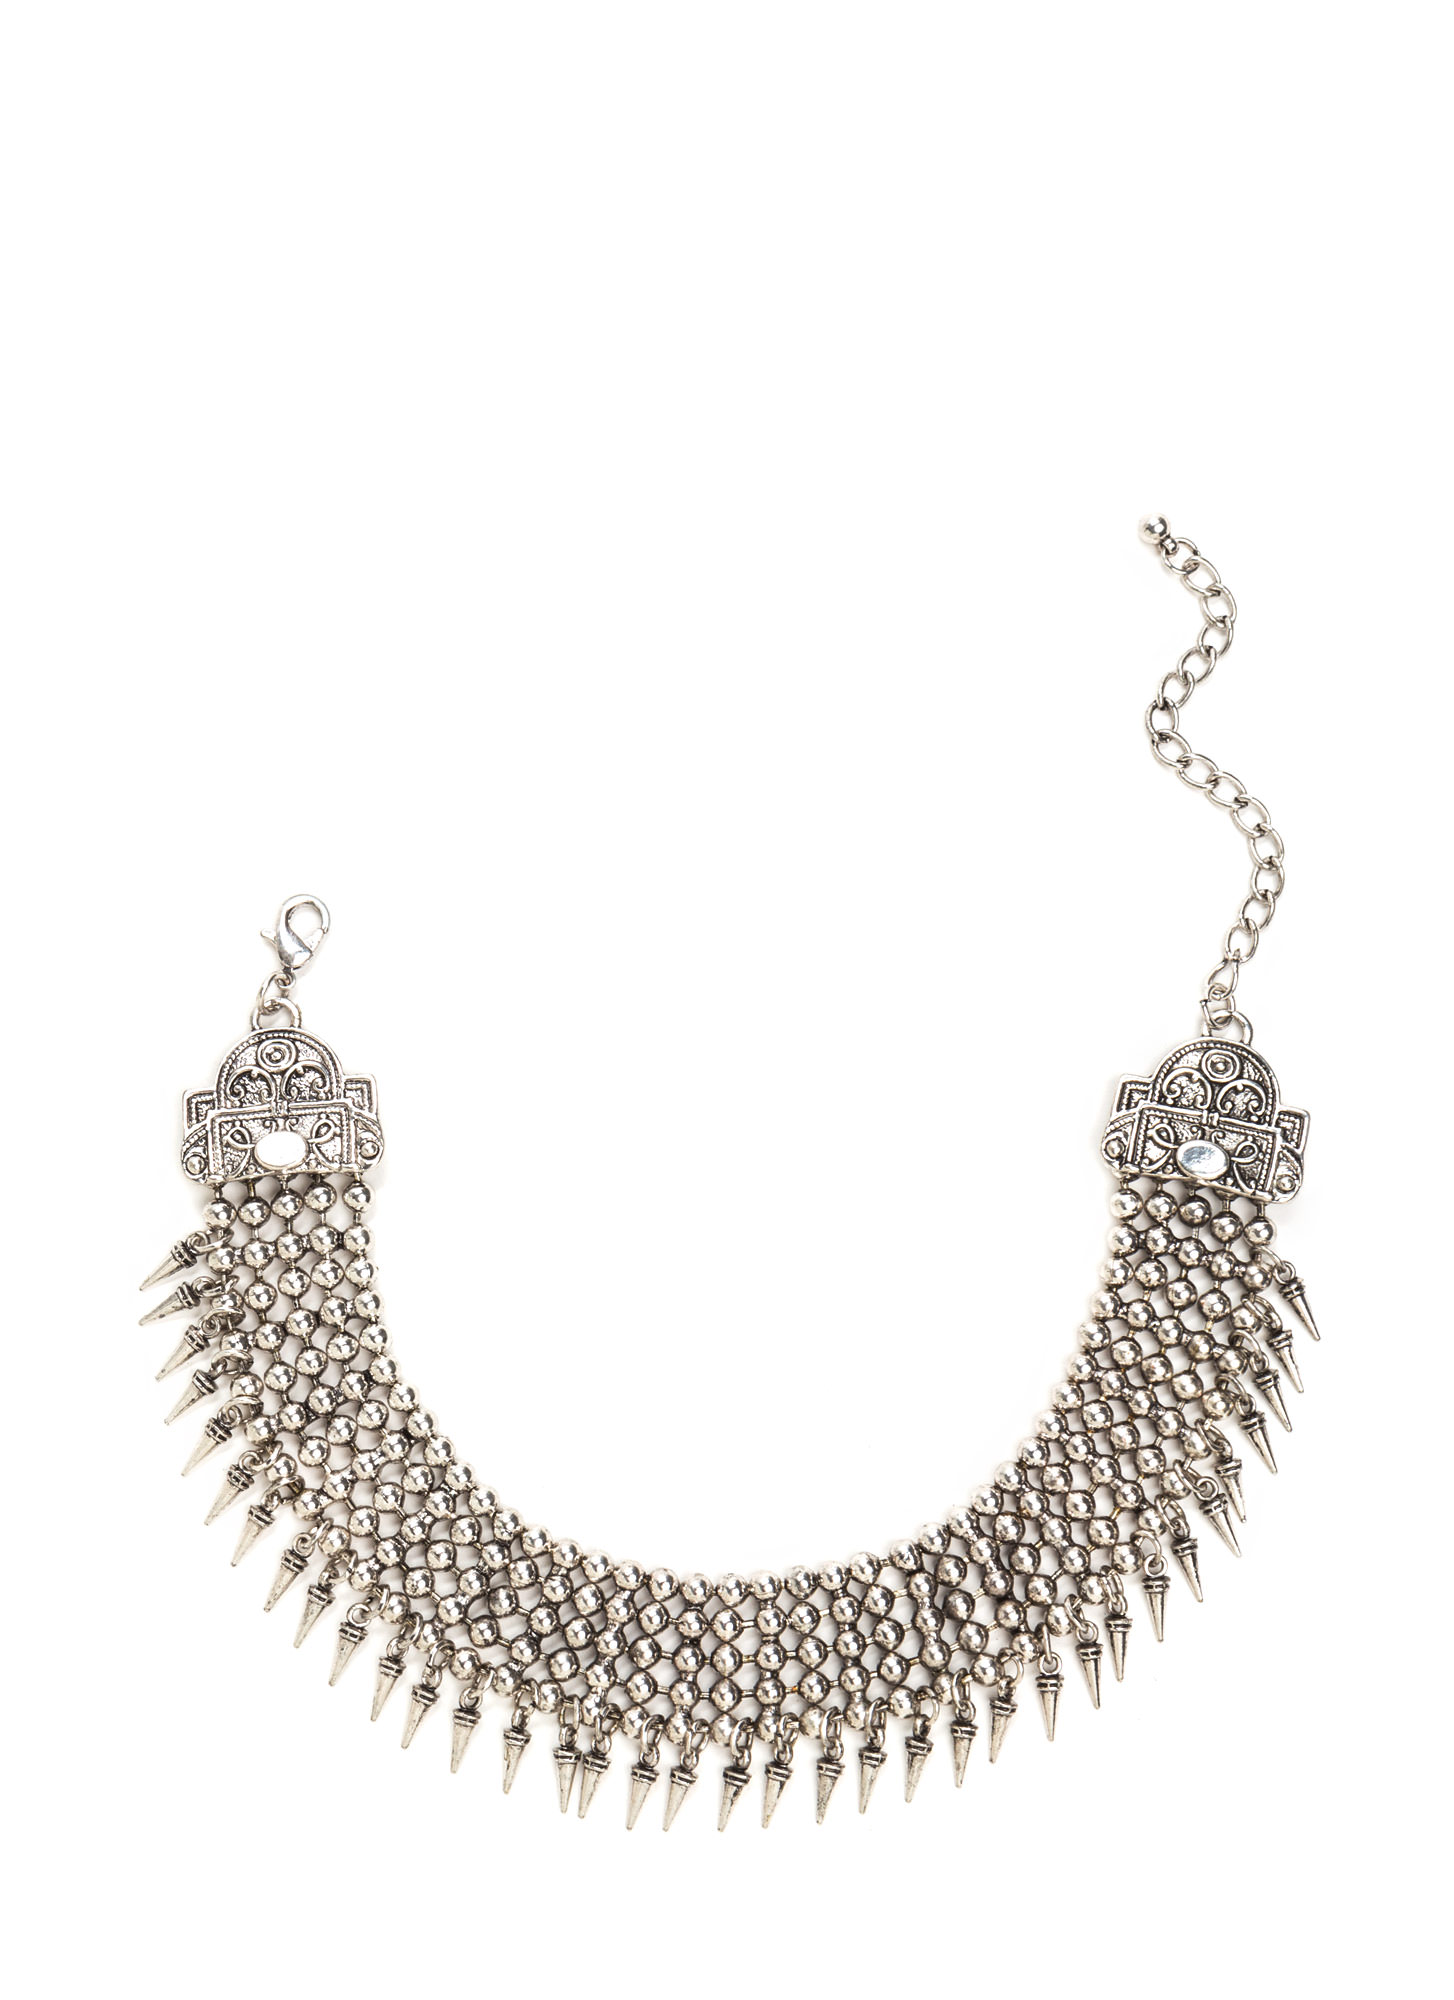 Legend Has It Metal Statement Choker DKSILVER